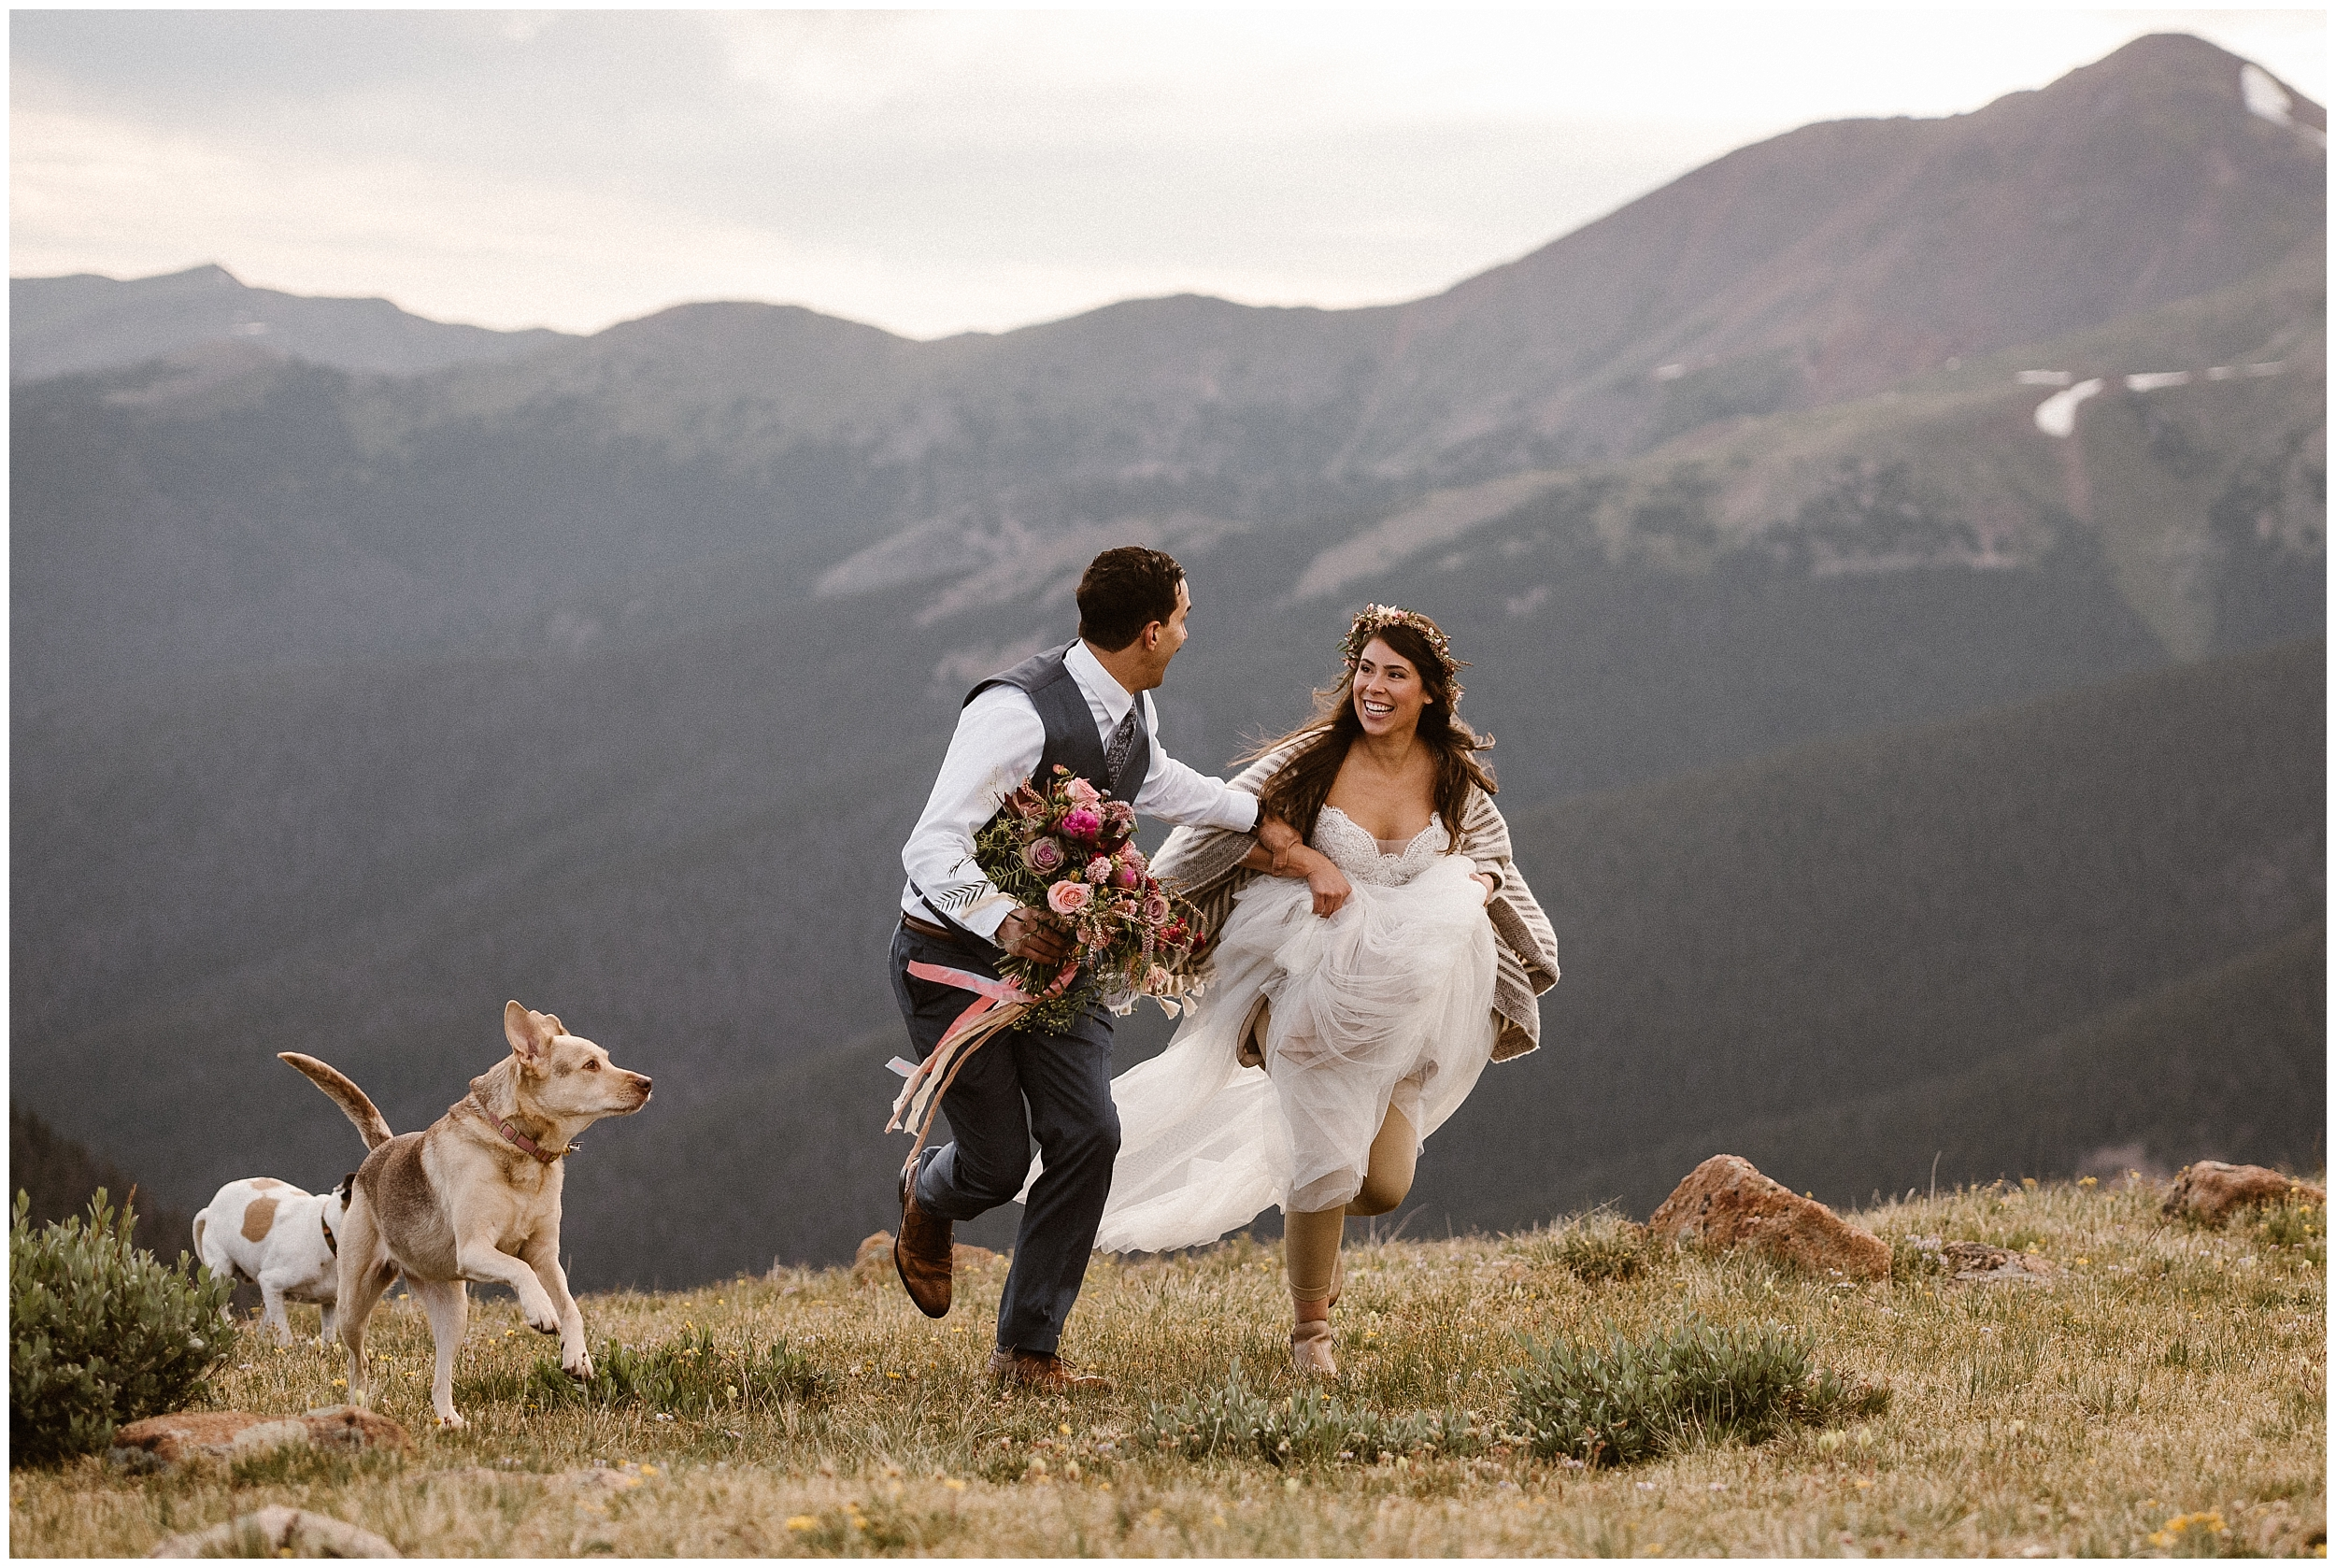 A bride and groom run through a mountaintop meadow as their two pups sprint alongside them during their elopement wedding ceremony. Including your dog in wedding ceremony is one of the meaningful, unique eloping ideas you can include in your adventure elopement.